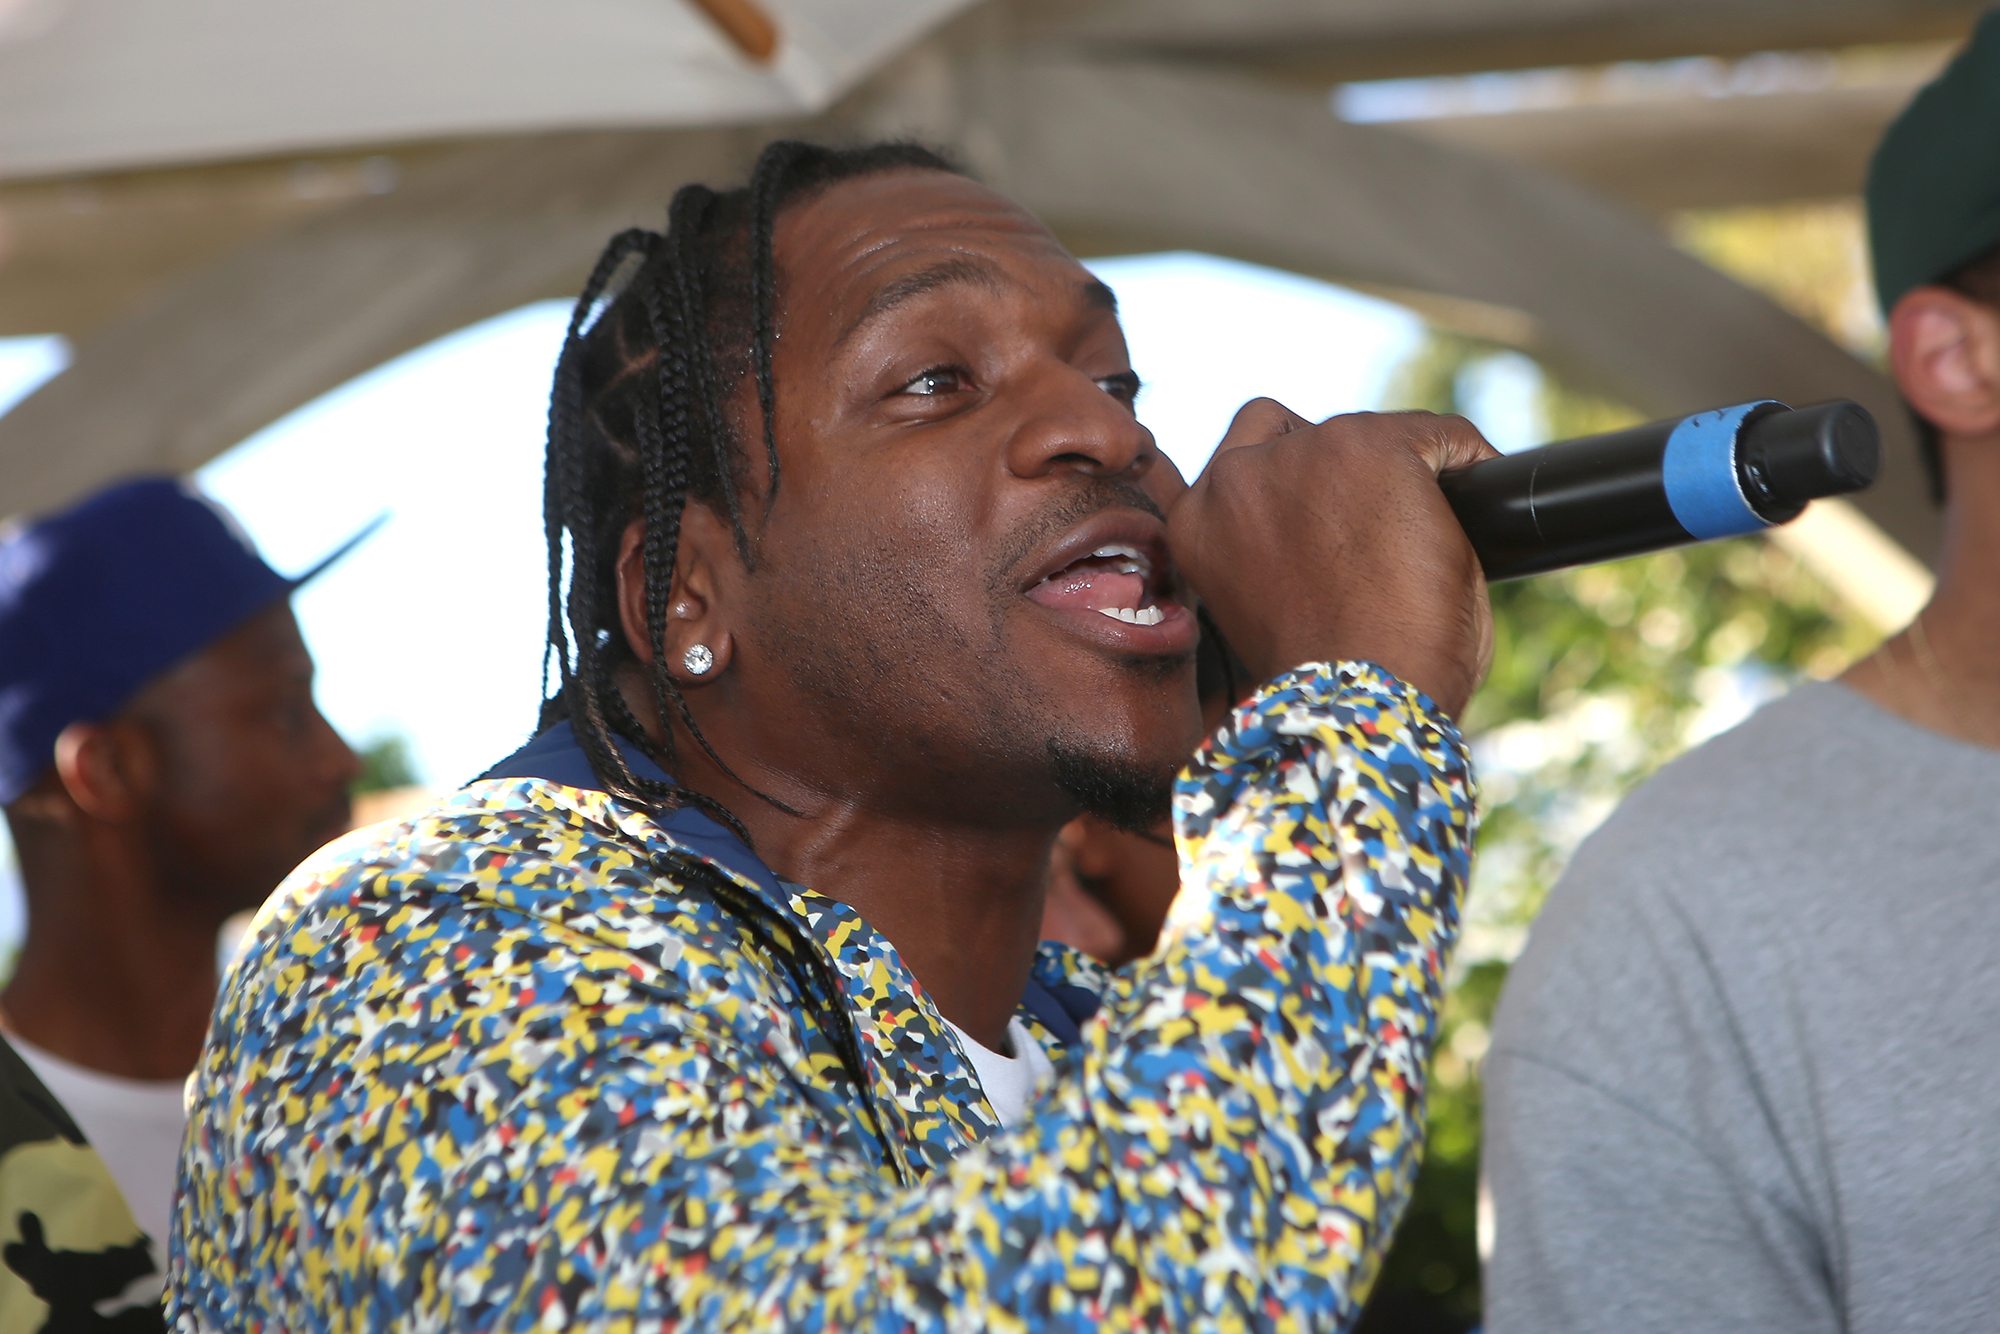 THERMAL, CA - APRIL 17:  Rapper Pusha T performs at REVOLVE Desert House (Photo by Ari Perilstein/Getty Images for A-OK Collective, LLC.)